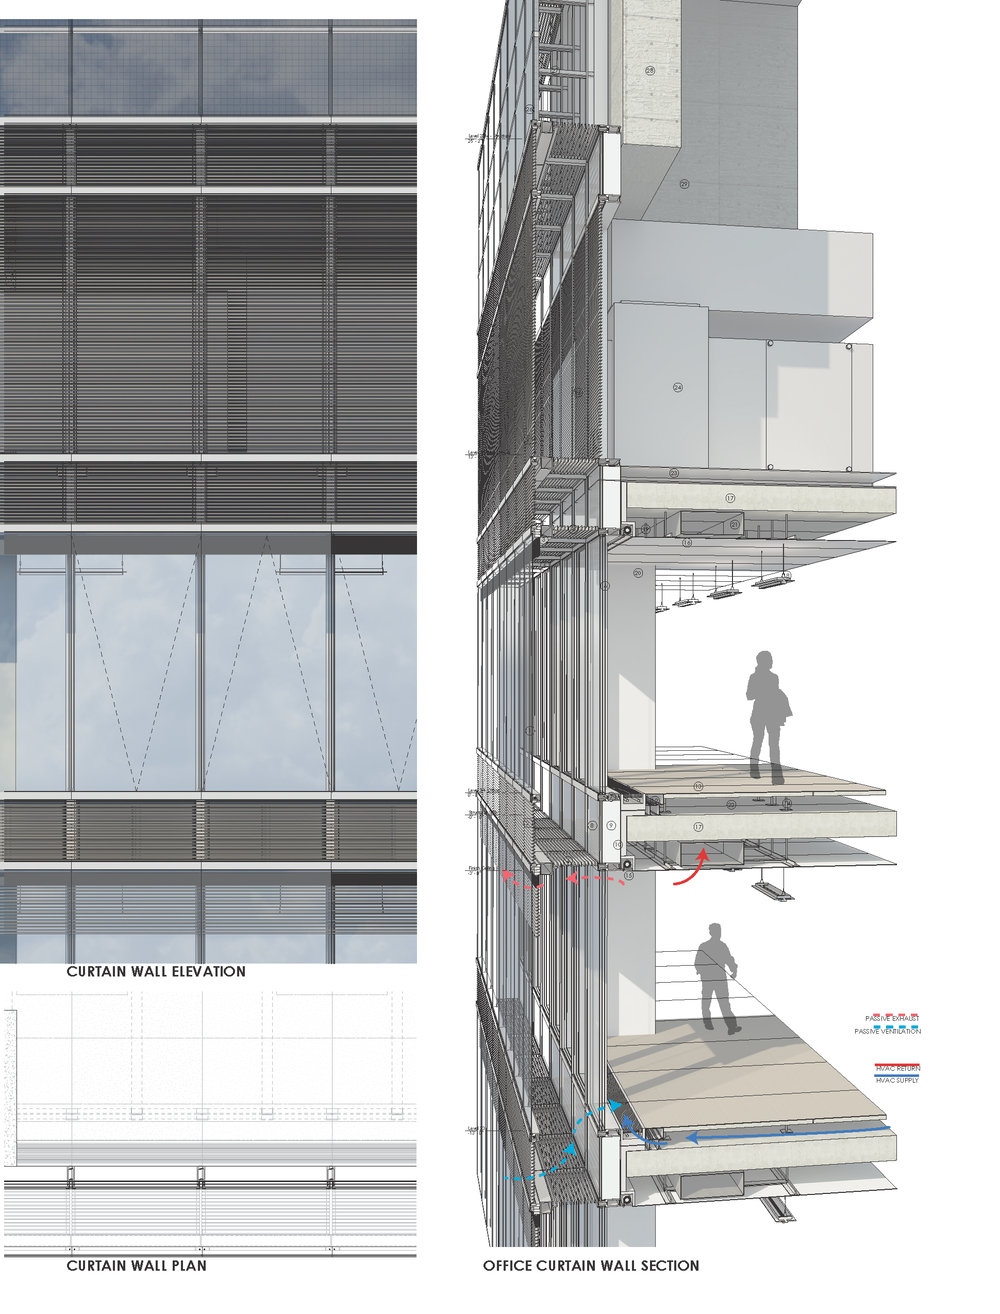 north cityfront plaza curtain wall detail glass detailed drawings building also best architectural concept design images rh pinterest